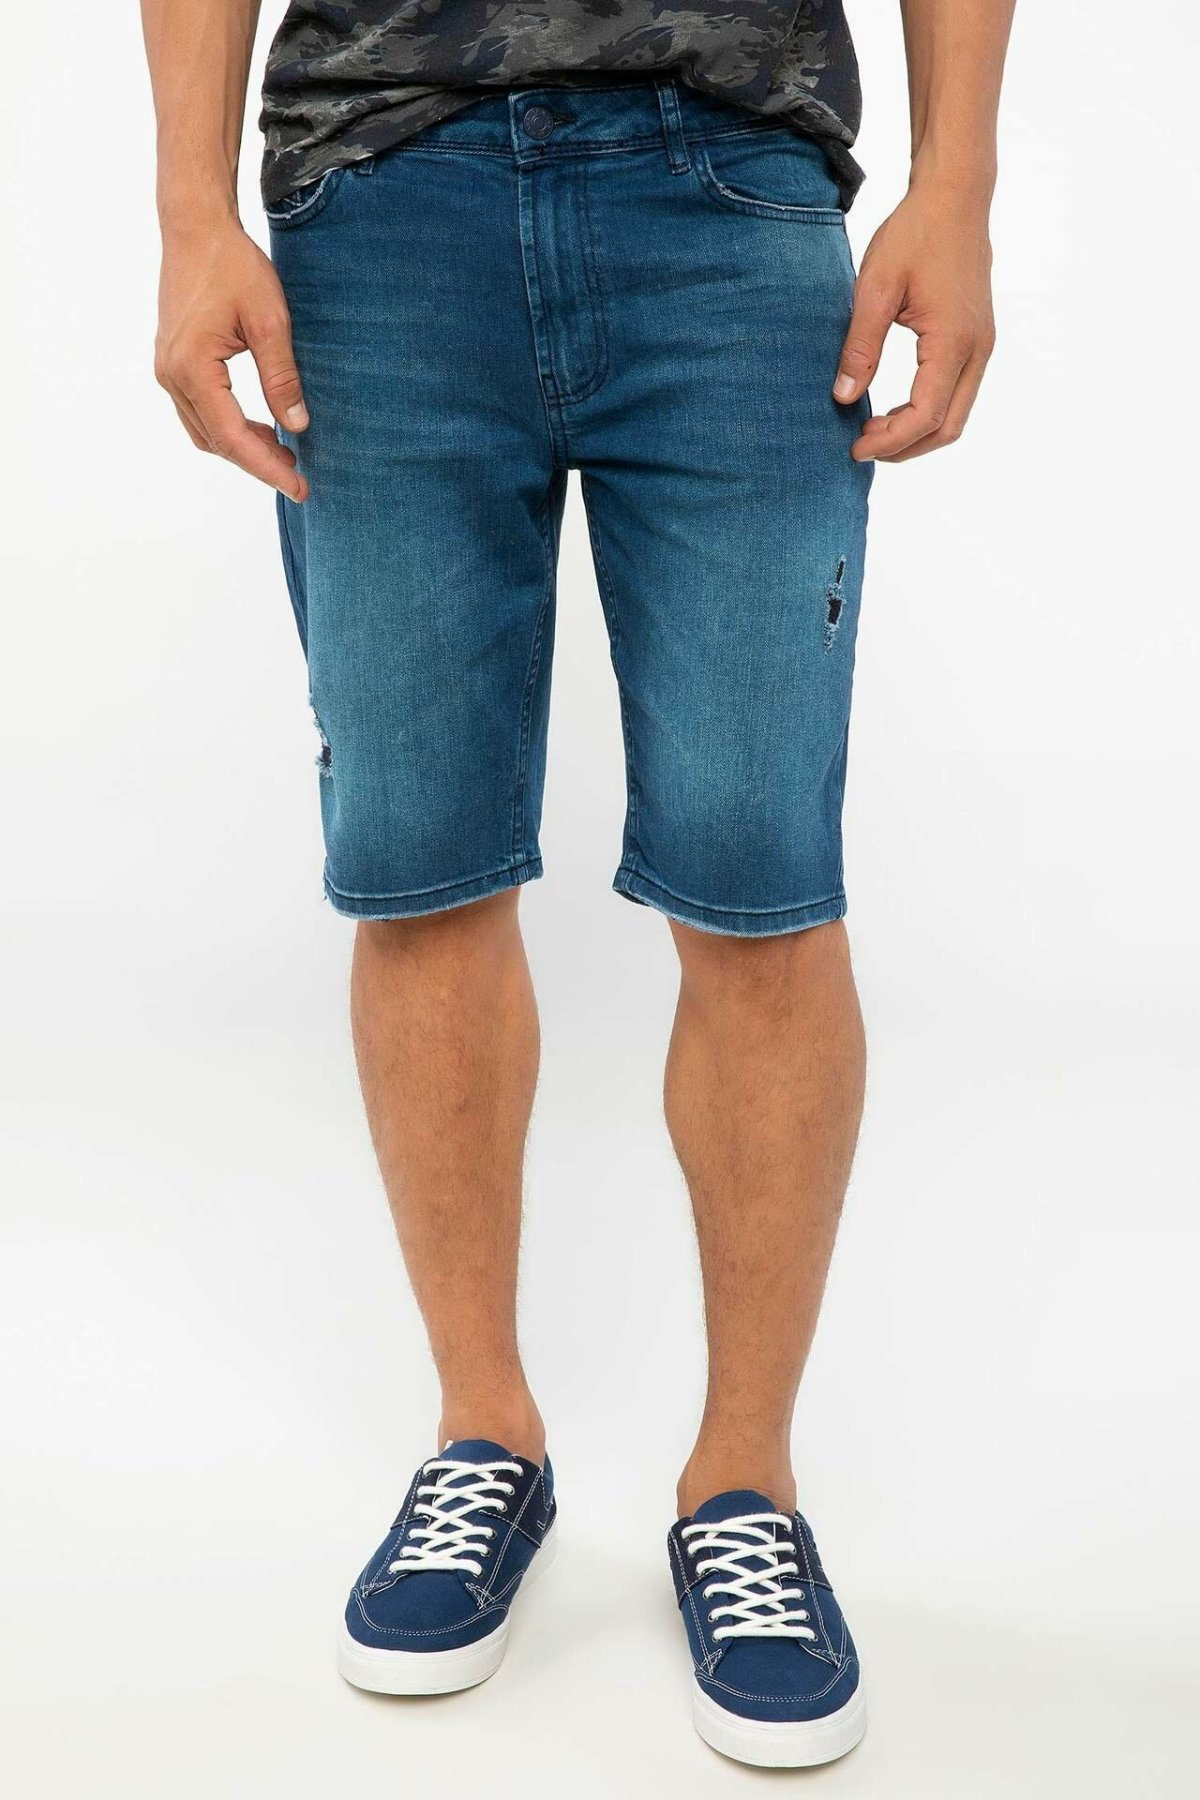 DeFacto Man Summer Washed Blue Denim Bottom Shorts Men Casual Soft Denim Bottoms Male Bermuda Shorts-I8824AZ18SM